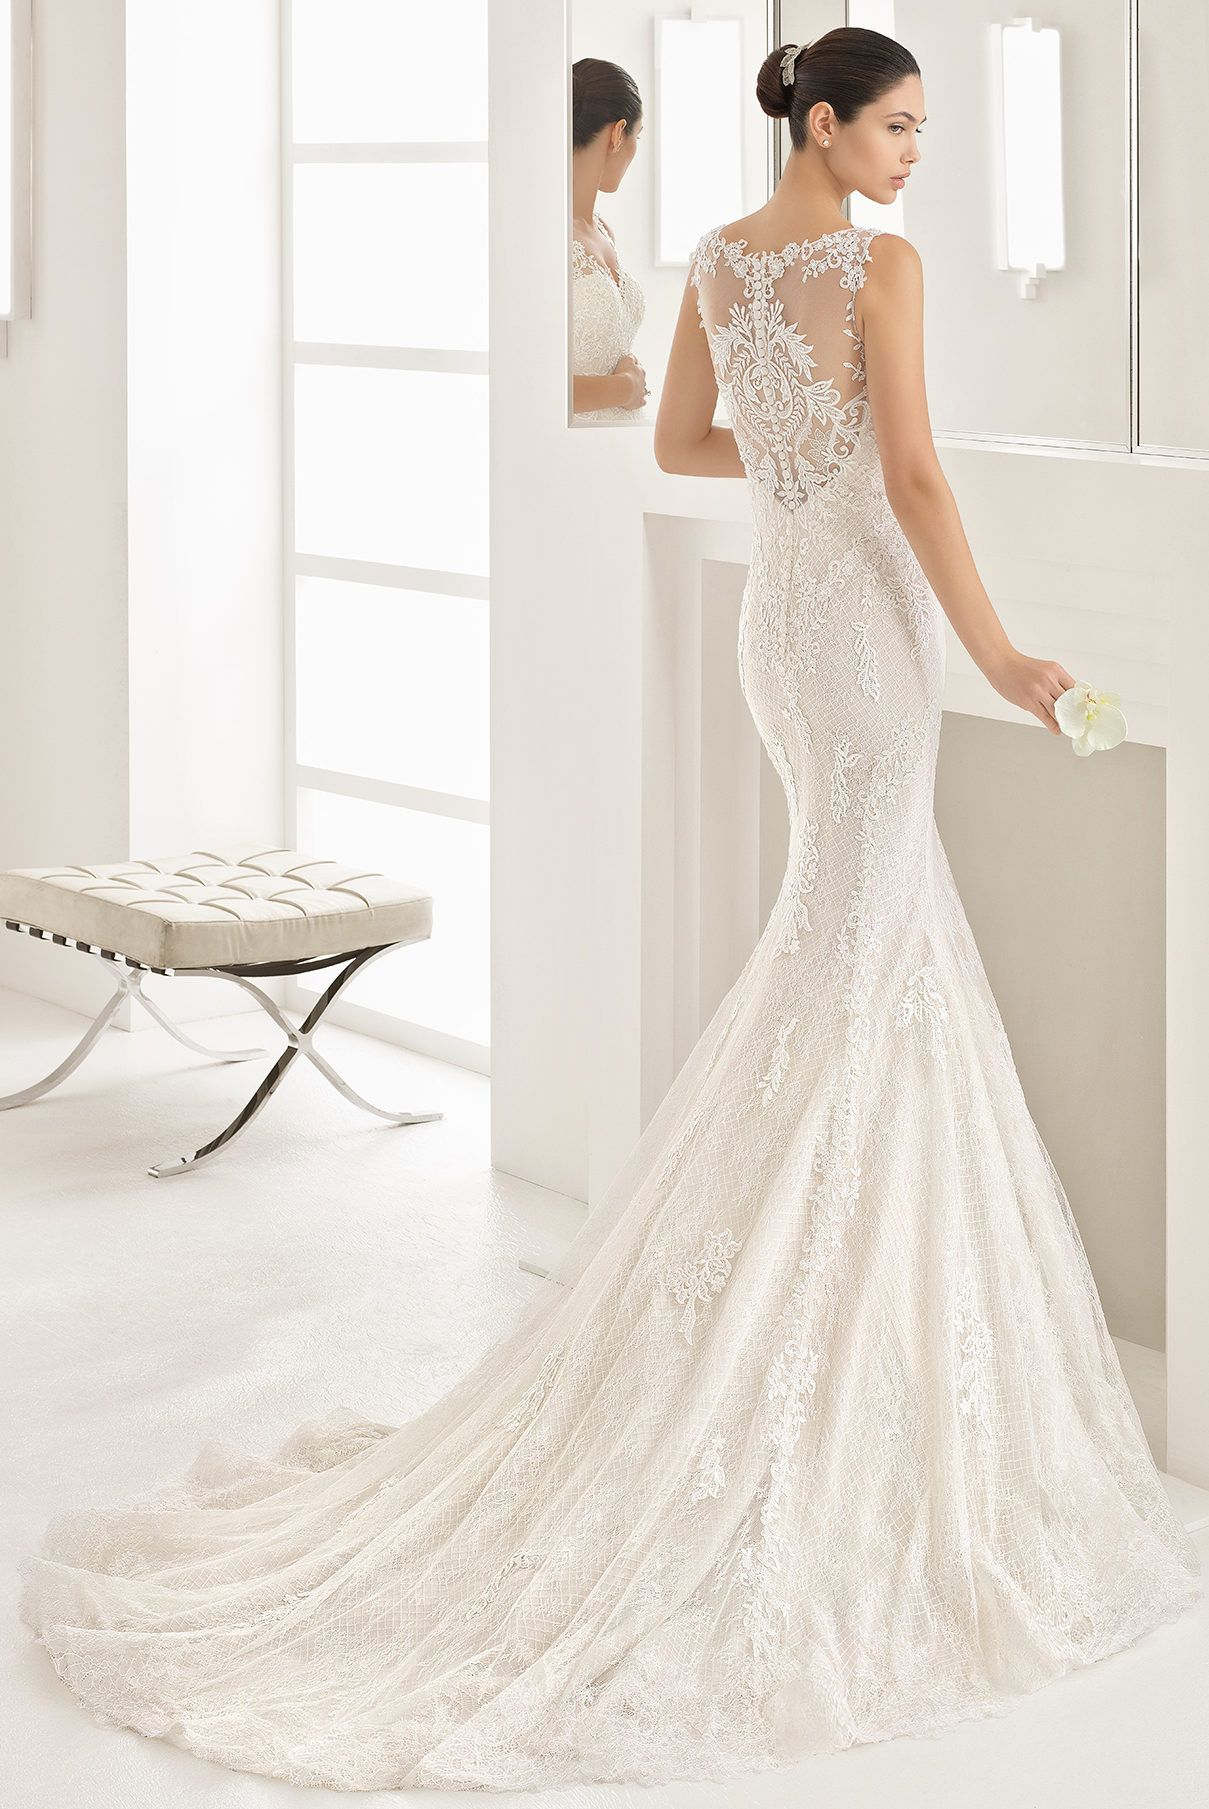 Collections wedding dresses perth bridal gowns frock me up collections wedding dresses perth bridal gowns ombrellifo Images